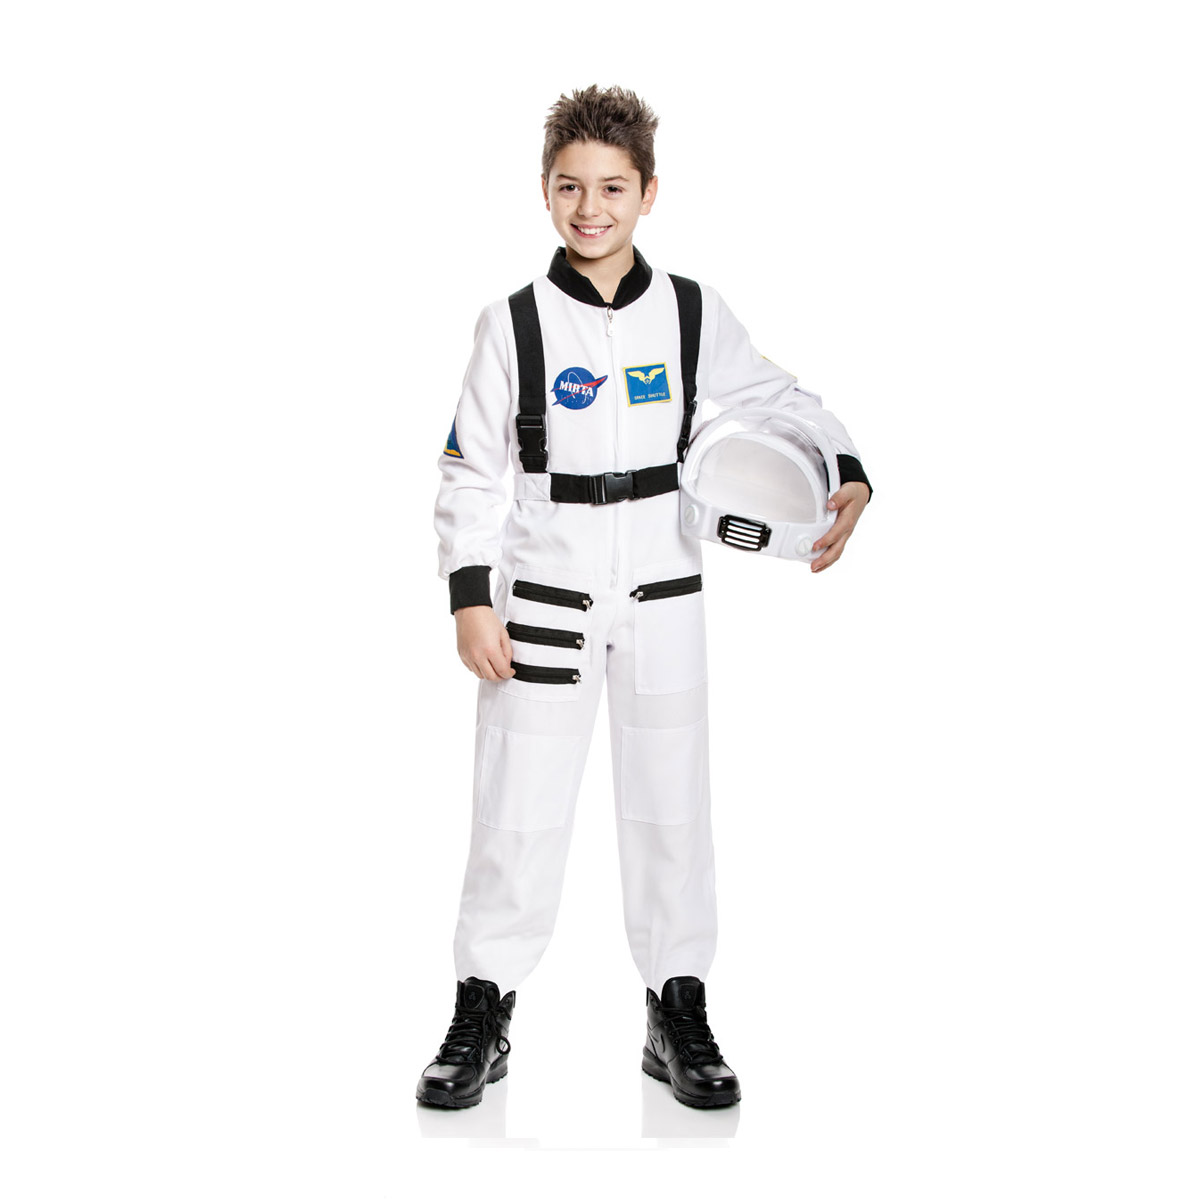 astronauten kost m kinder weltall raumfahrer weltraum kost mplanet. Black Bedroom Furniture Sets. Home Design Ideas